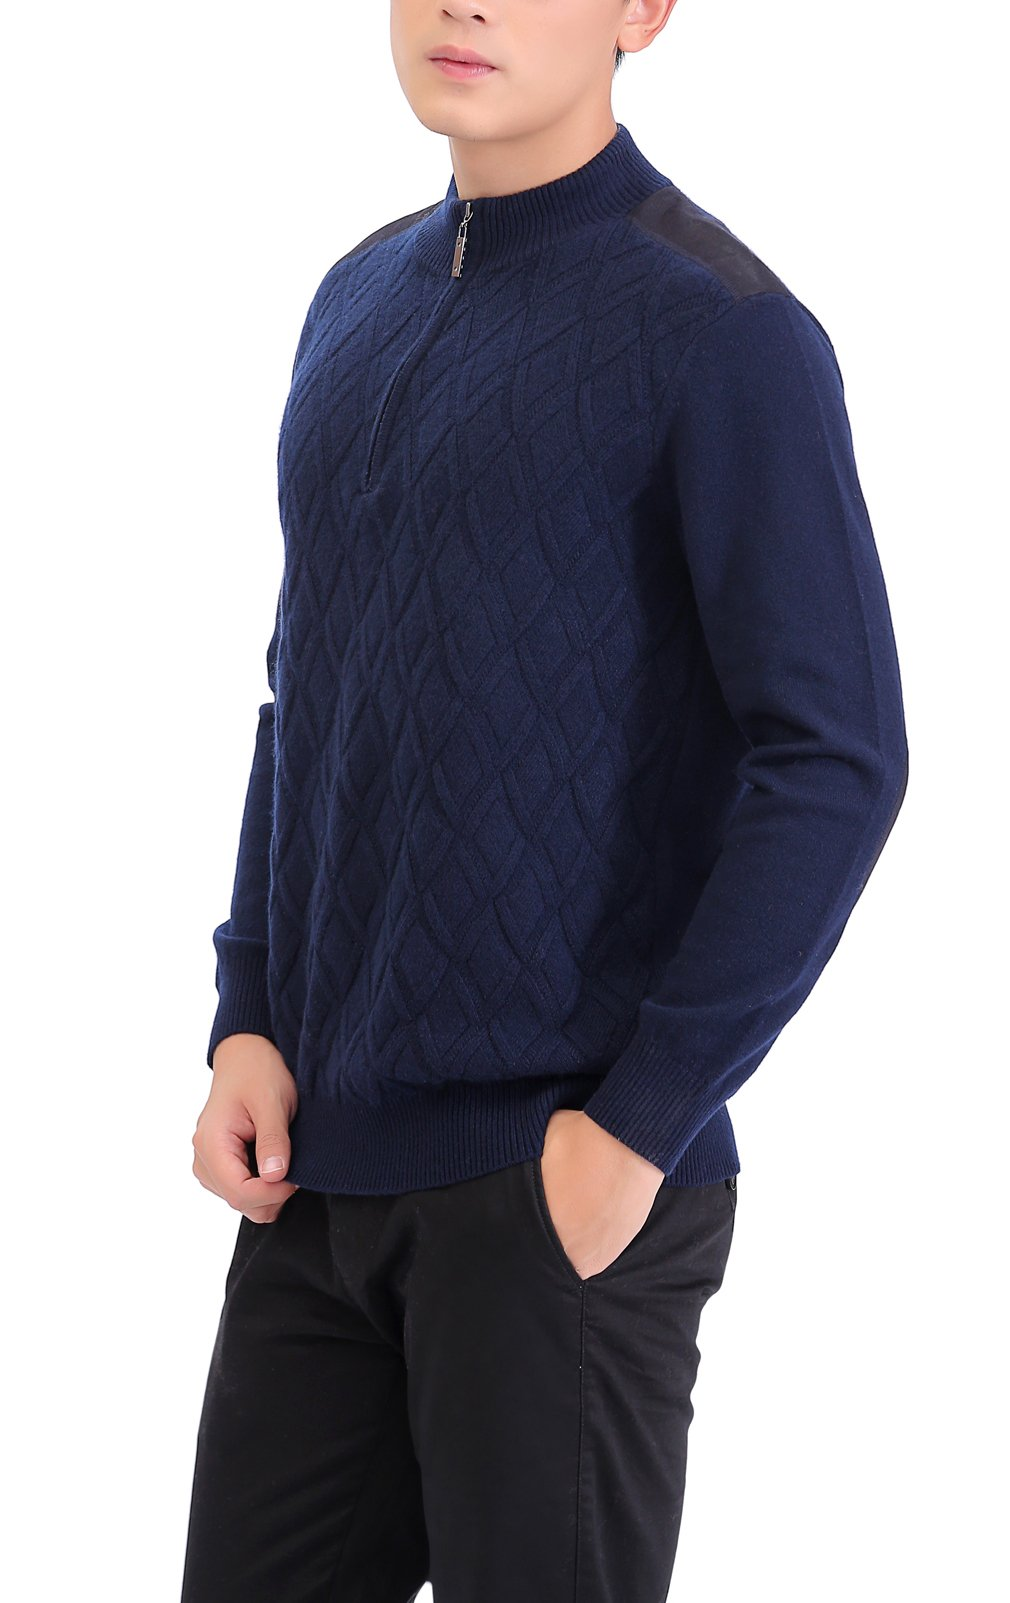 METERDE Men's Knitwear Half Zip Business Casual Cashmere Pullover Sweater X by Cashmere DX (Image #4)